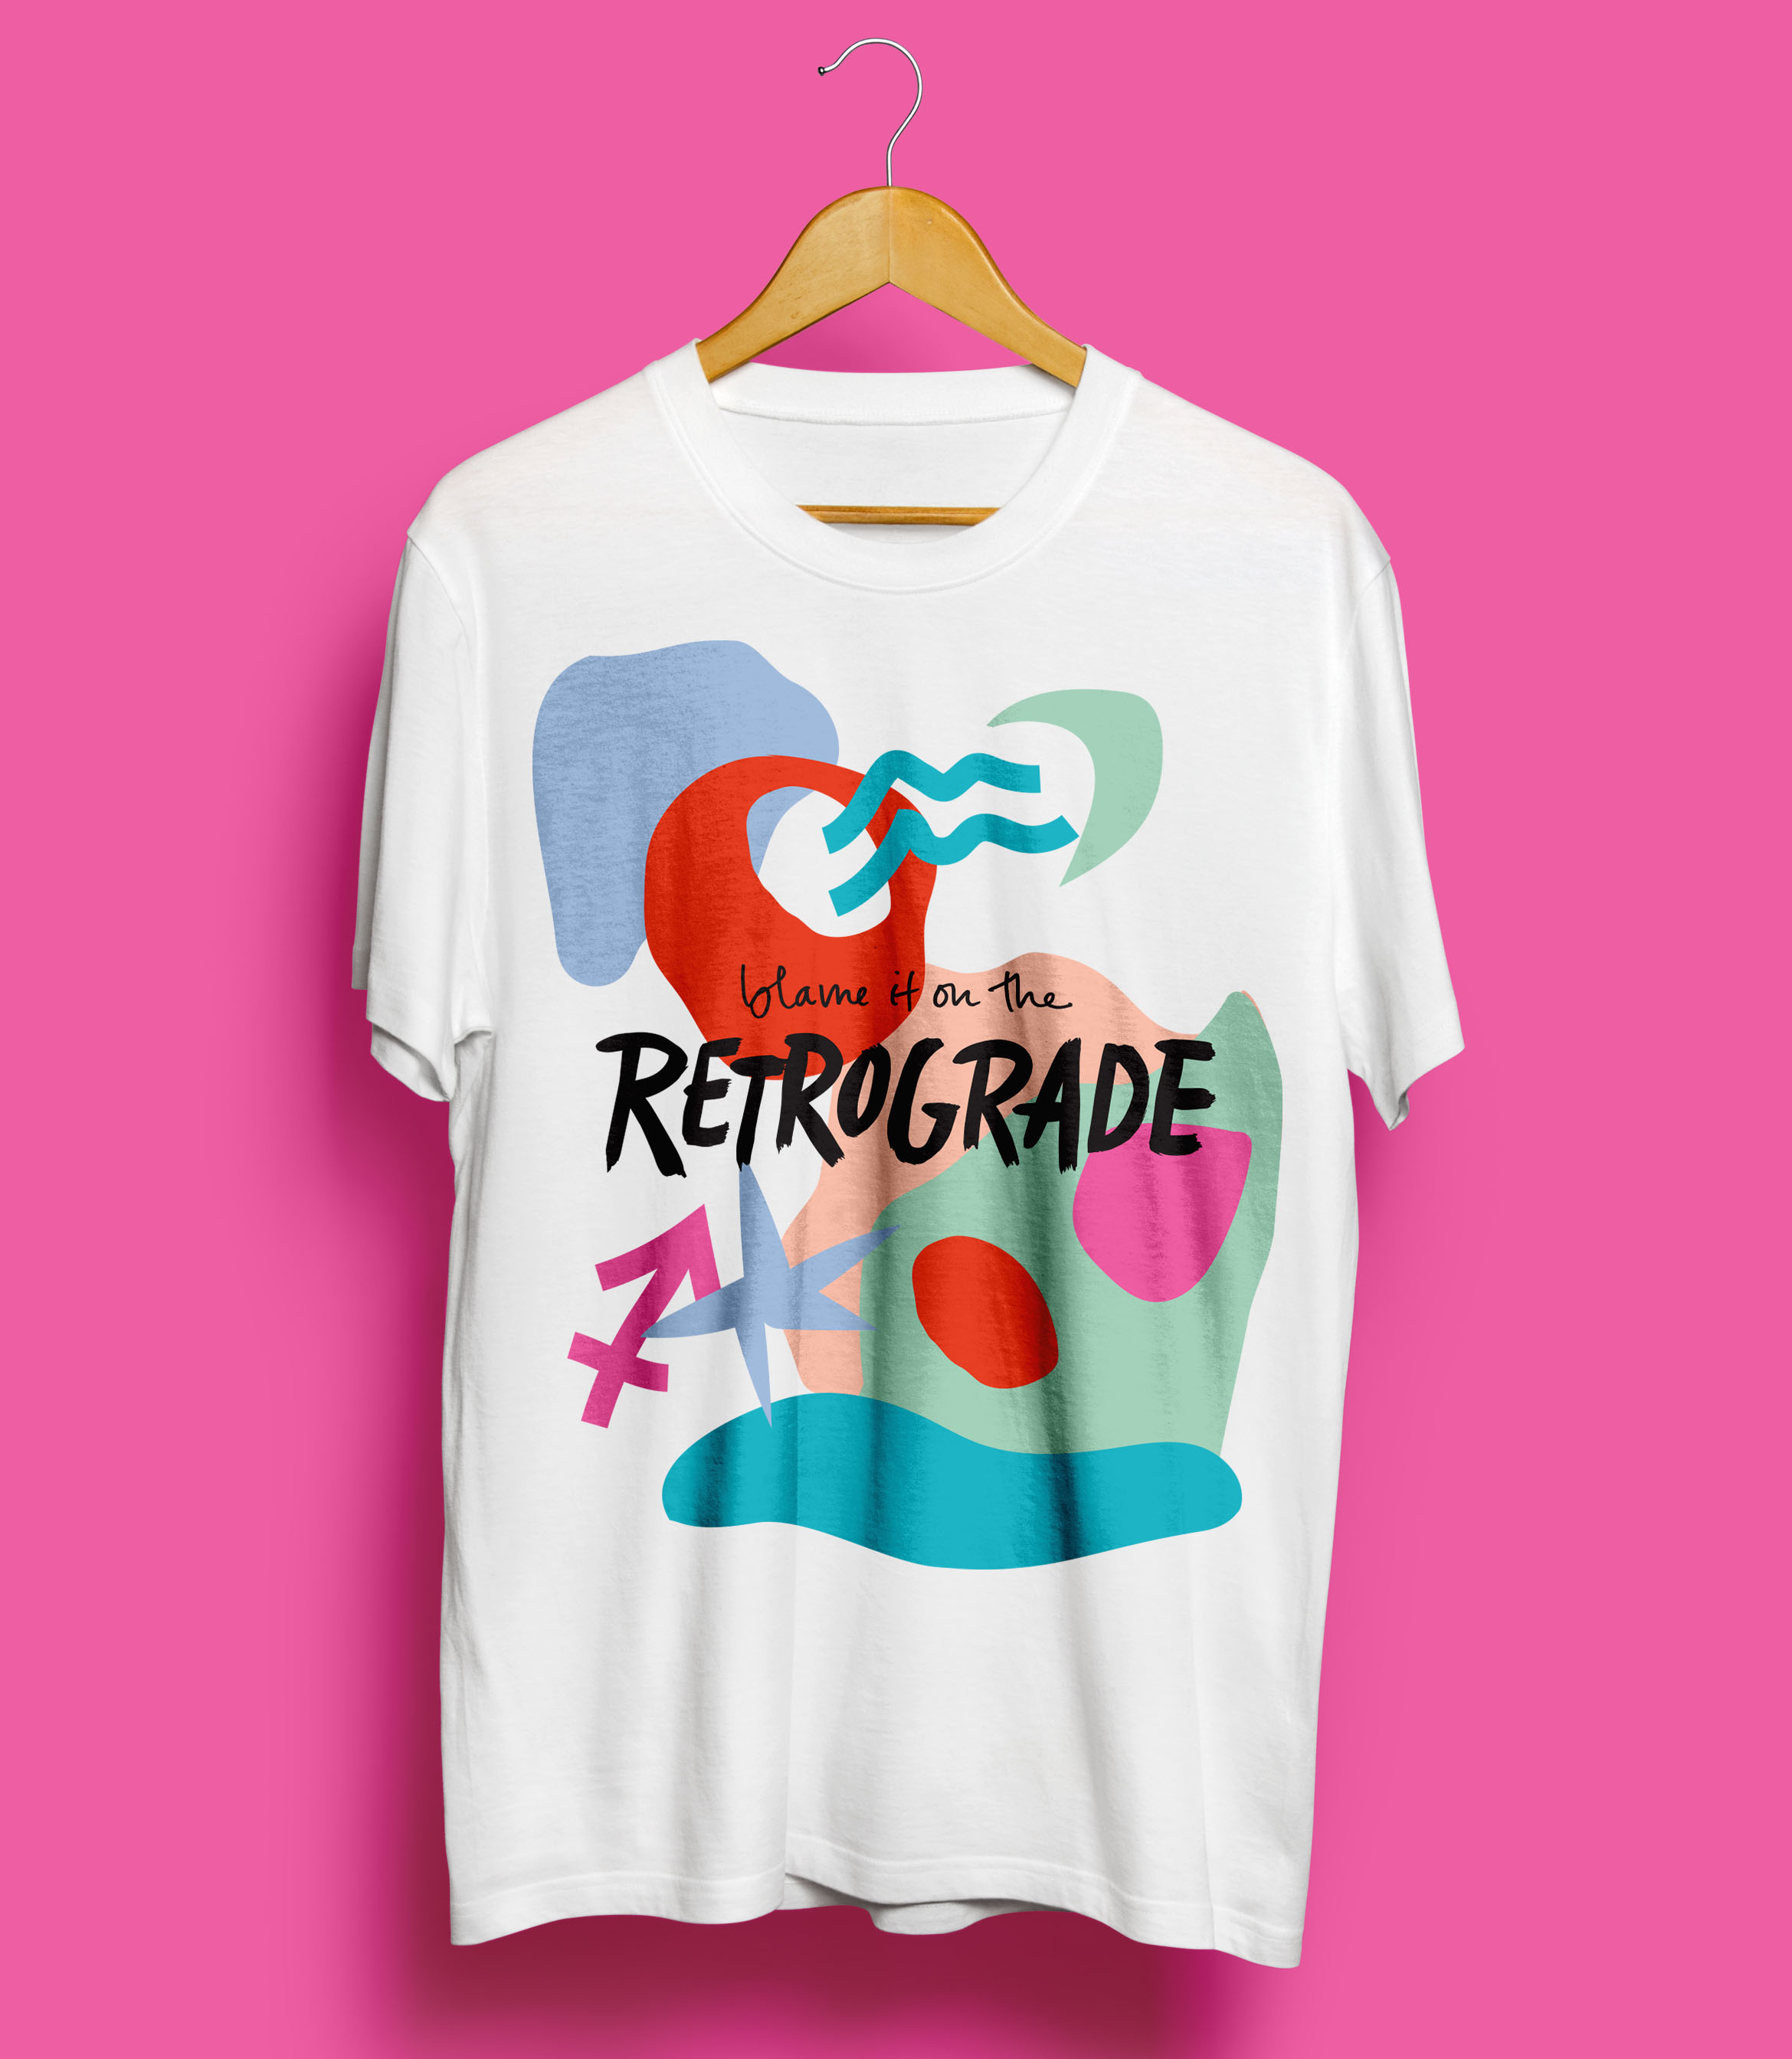 Retrograde_Shirt 1.jpg